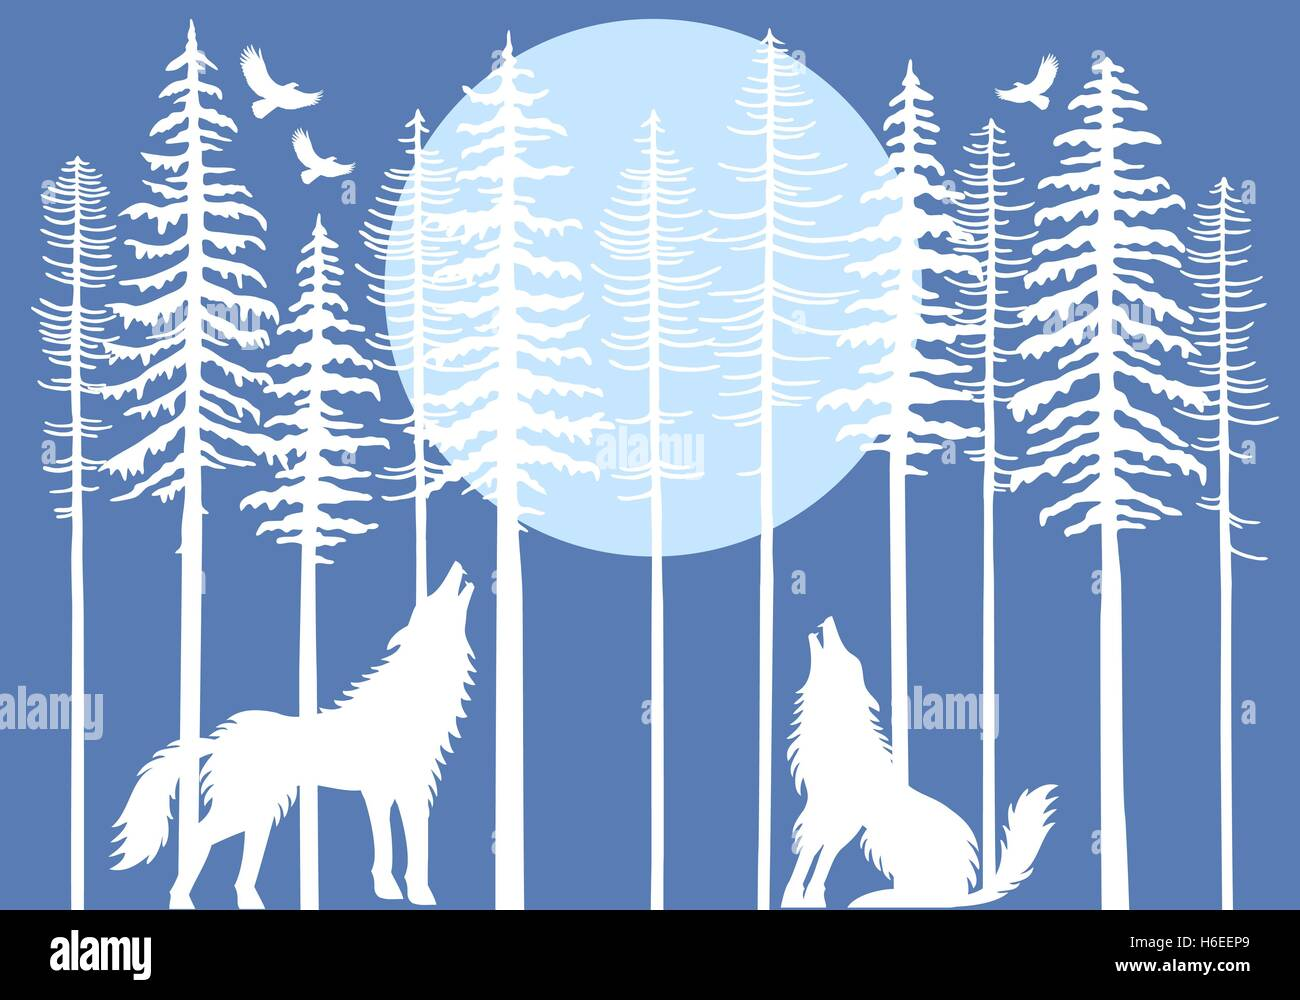 Howling wolf in fir tree forest with blue moon, vector illustration - Stock Image